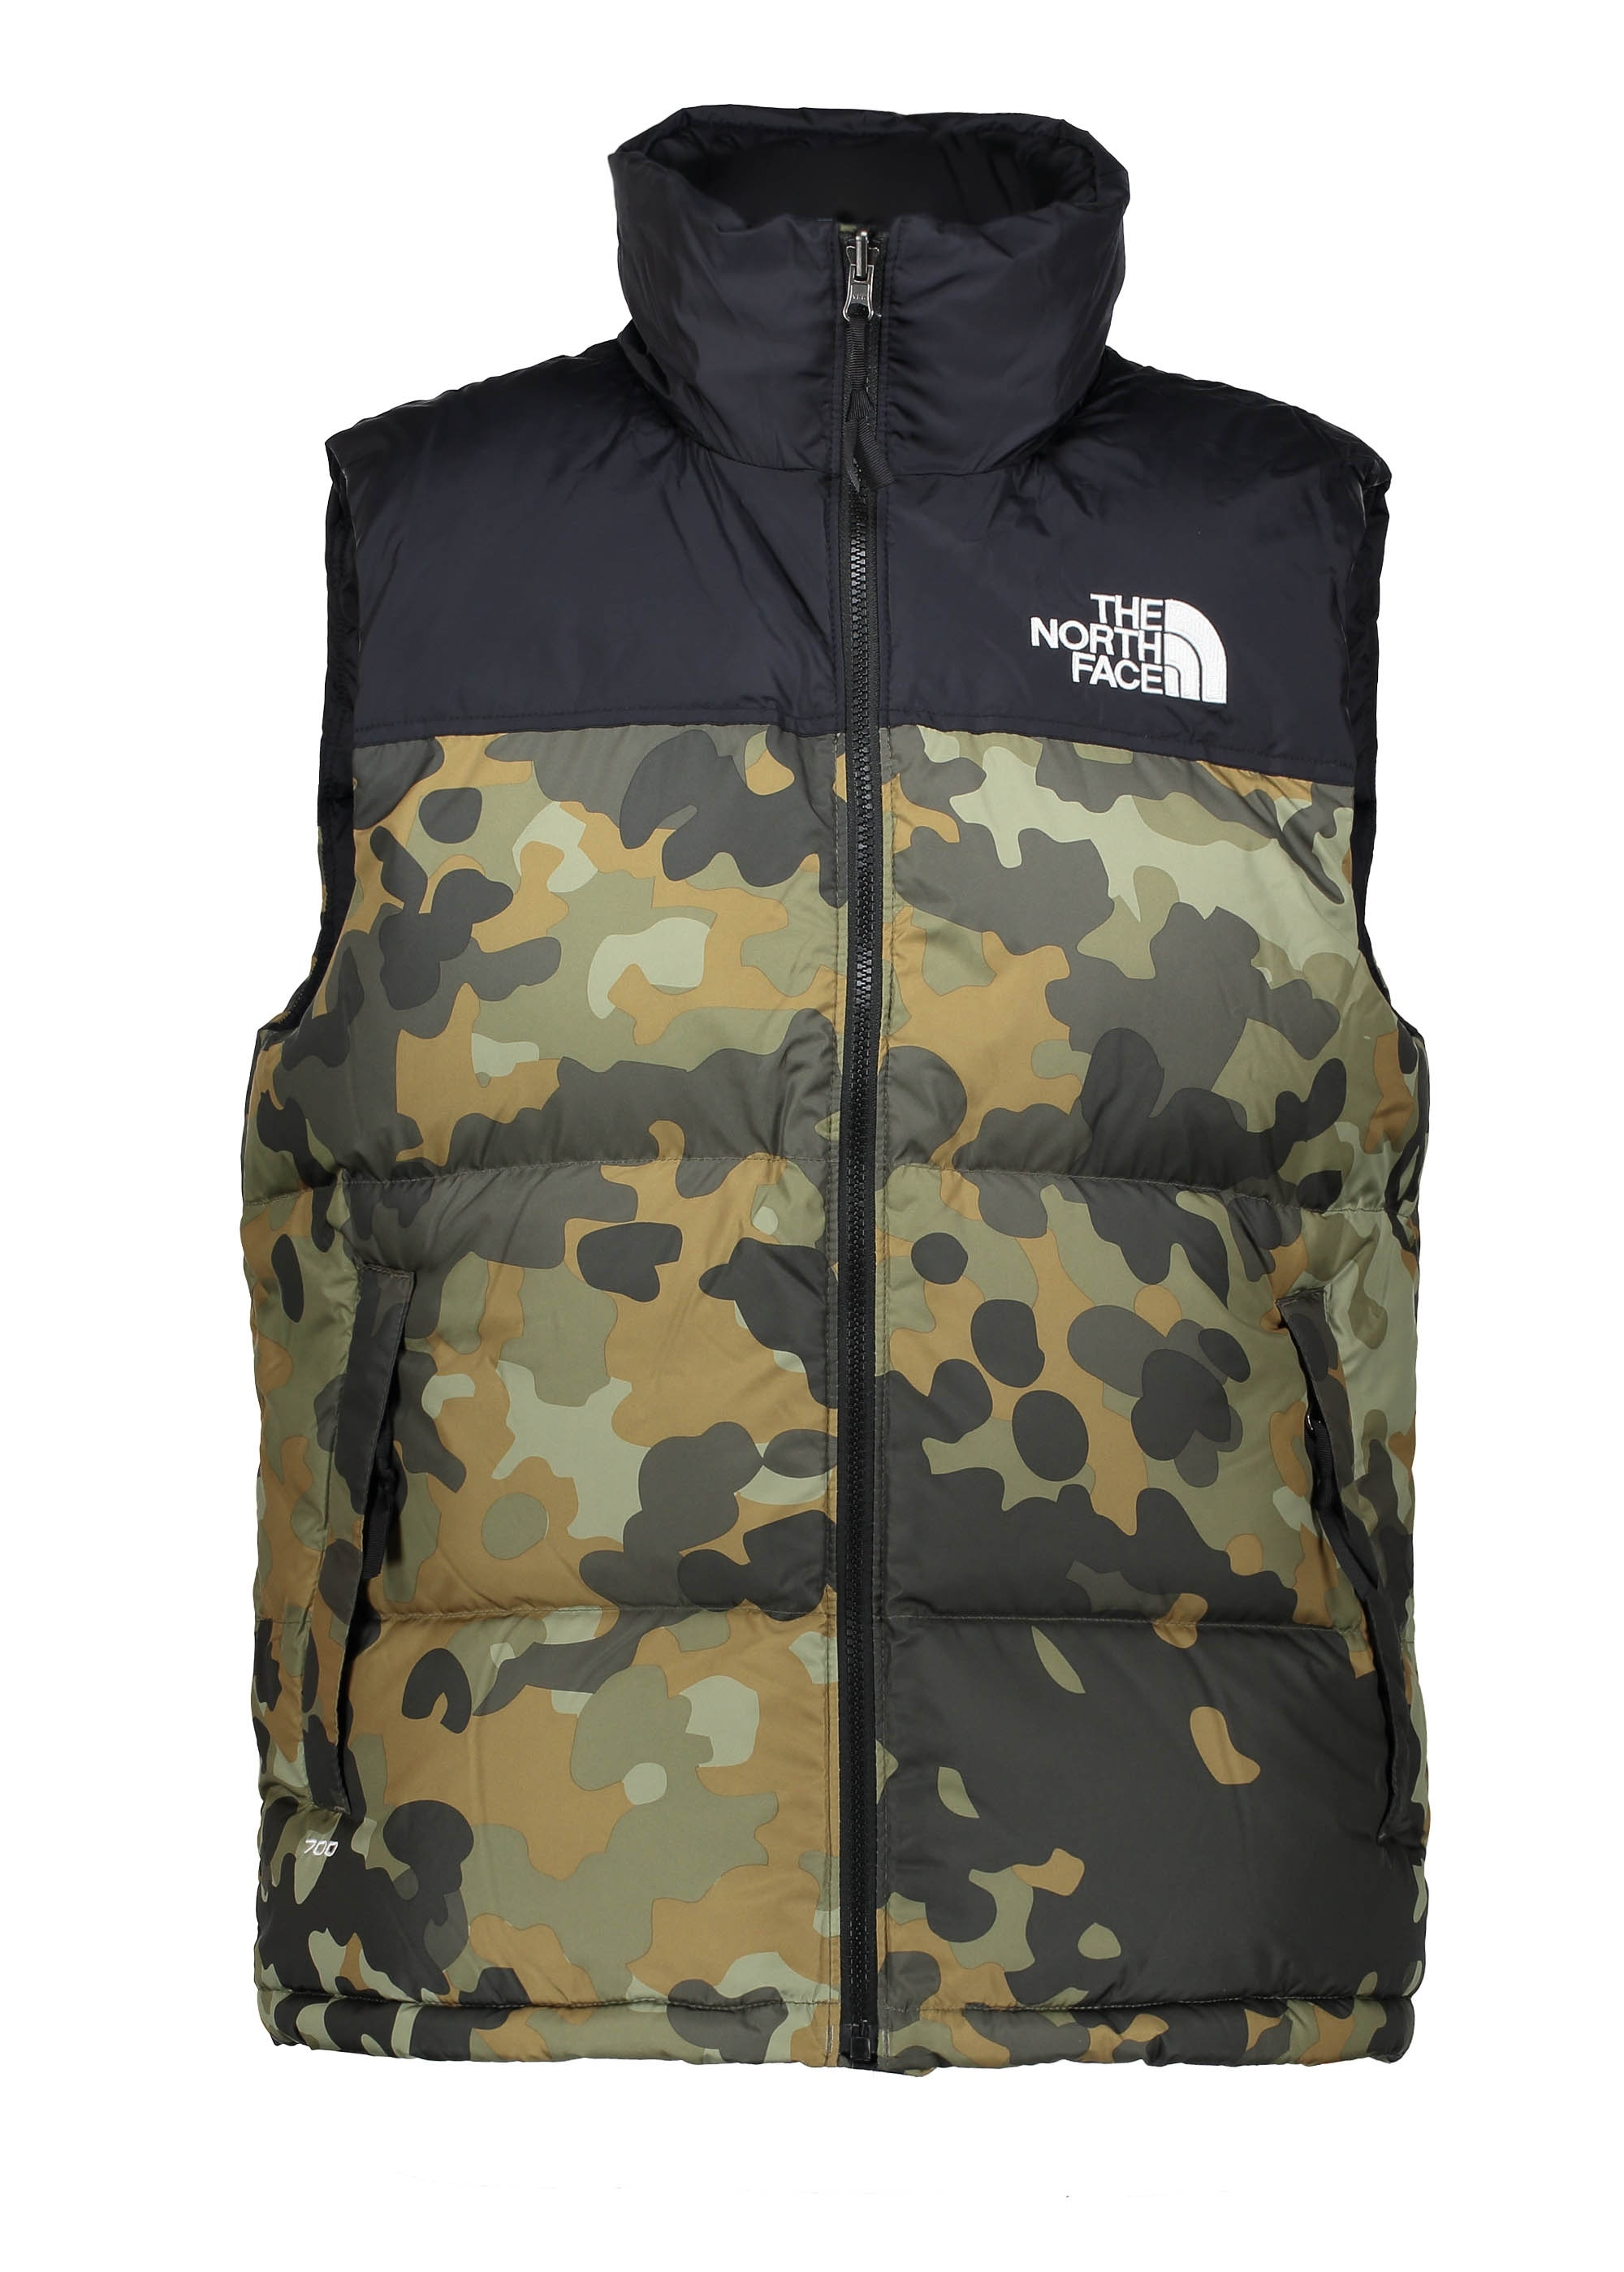 The North Face 1996 Nuptse Vest Camo Triads Mens From